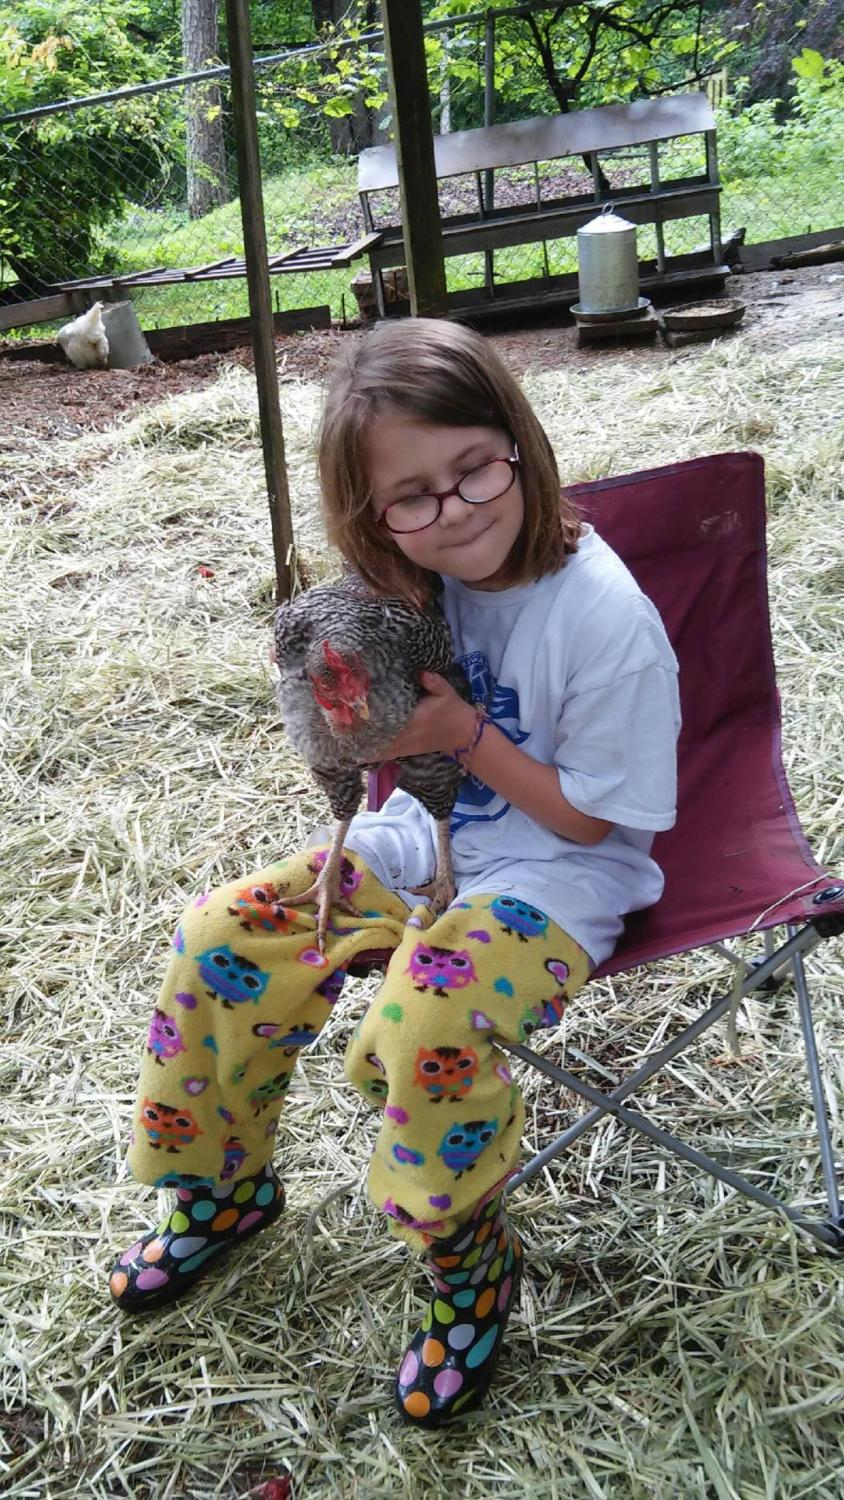 me and one of my 2 chickens